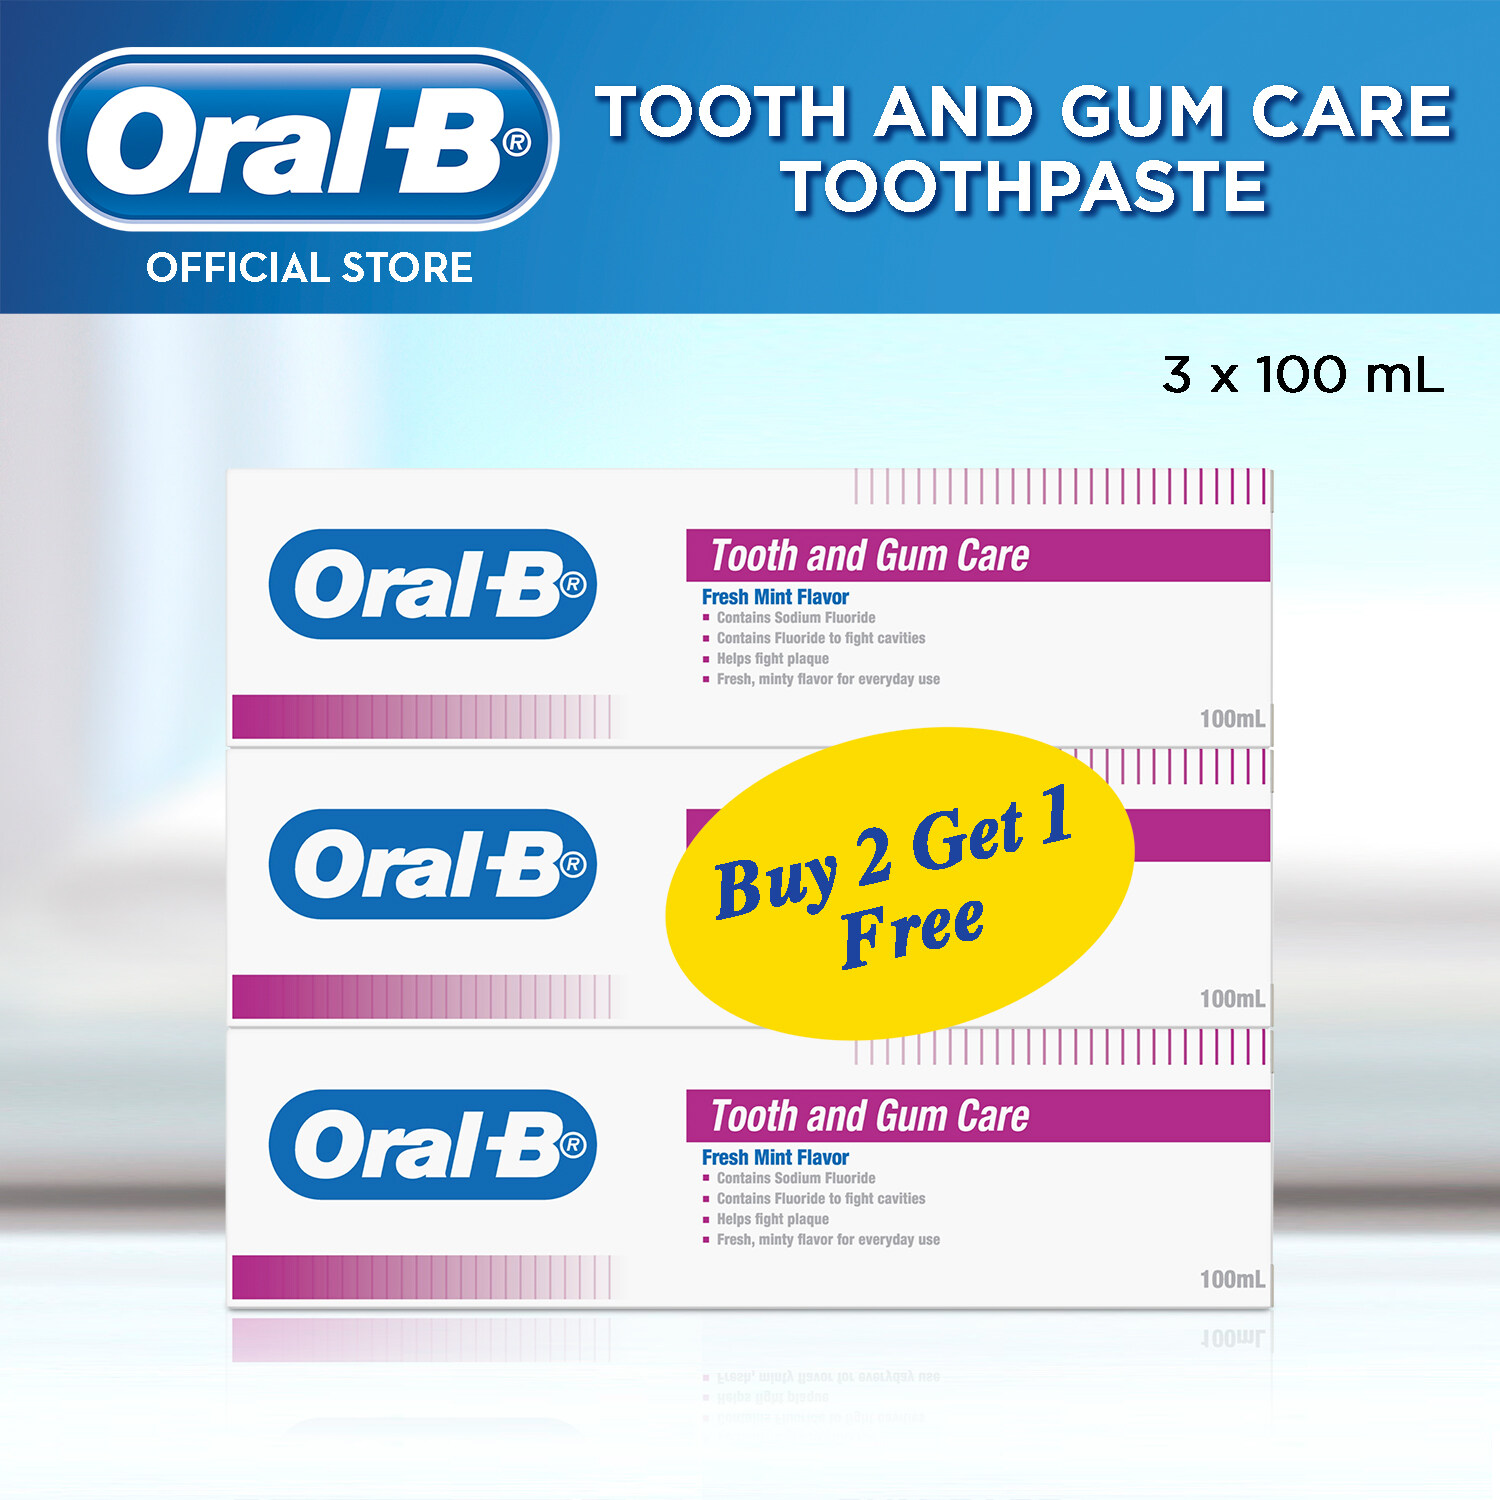 Oral-B Tooth and Gum Care (Fresh Mint) Toothpaste 100ml x3